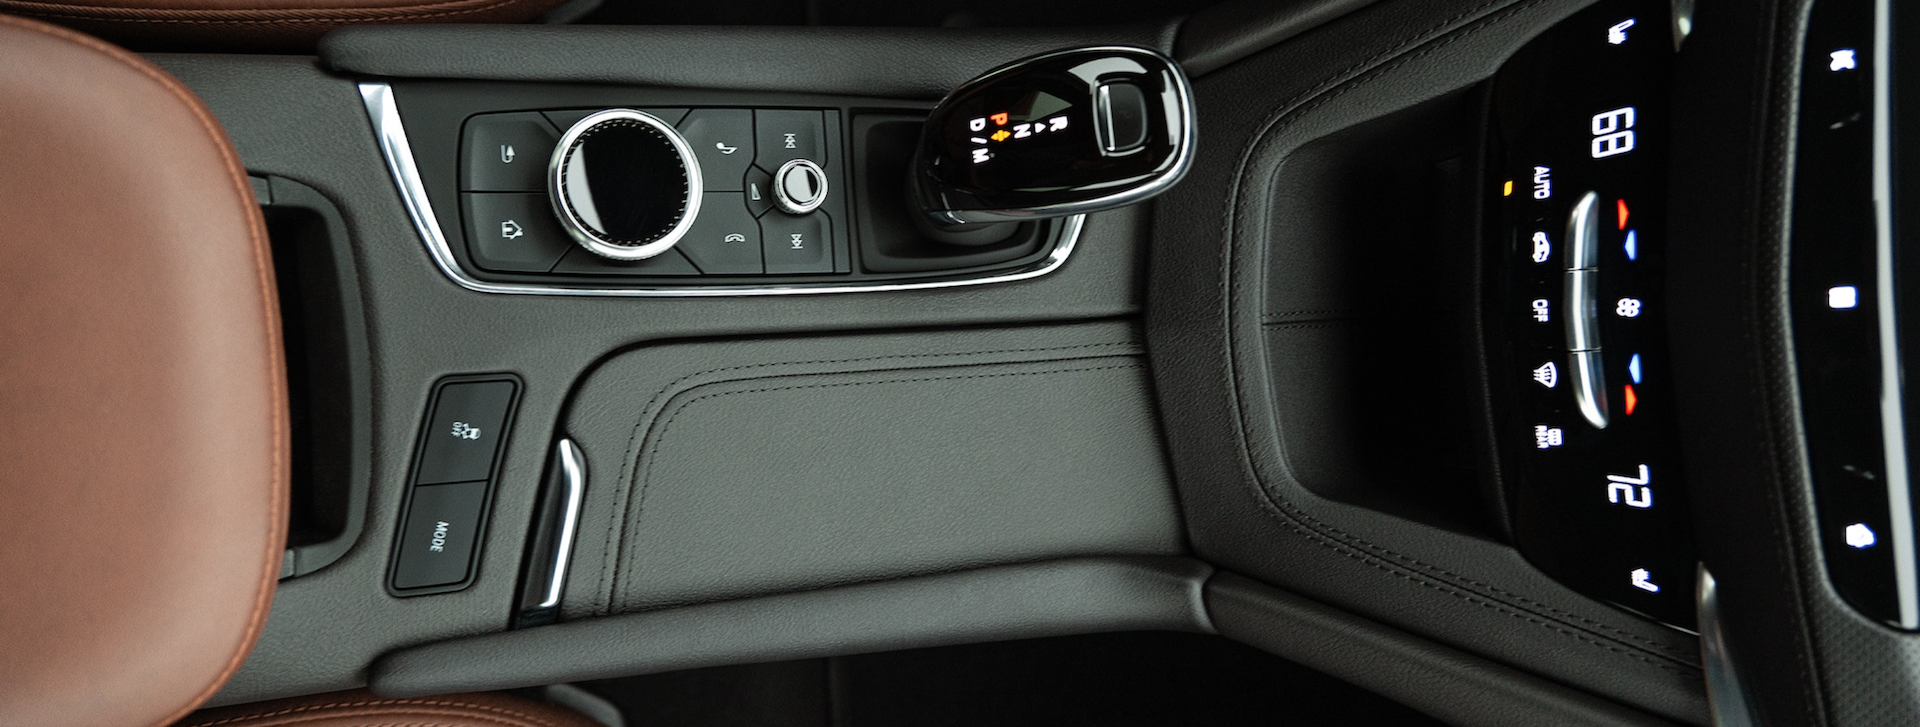 Pic of the shift knob in the 2021 Cadillac XT5